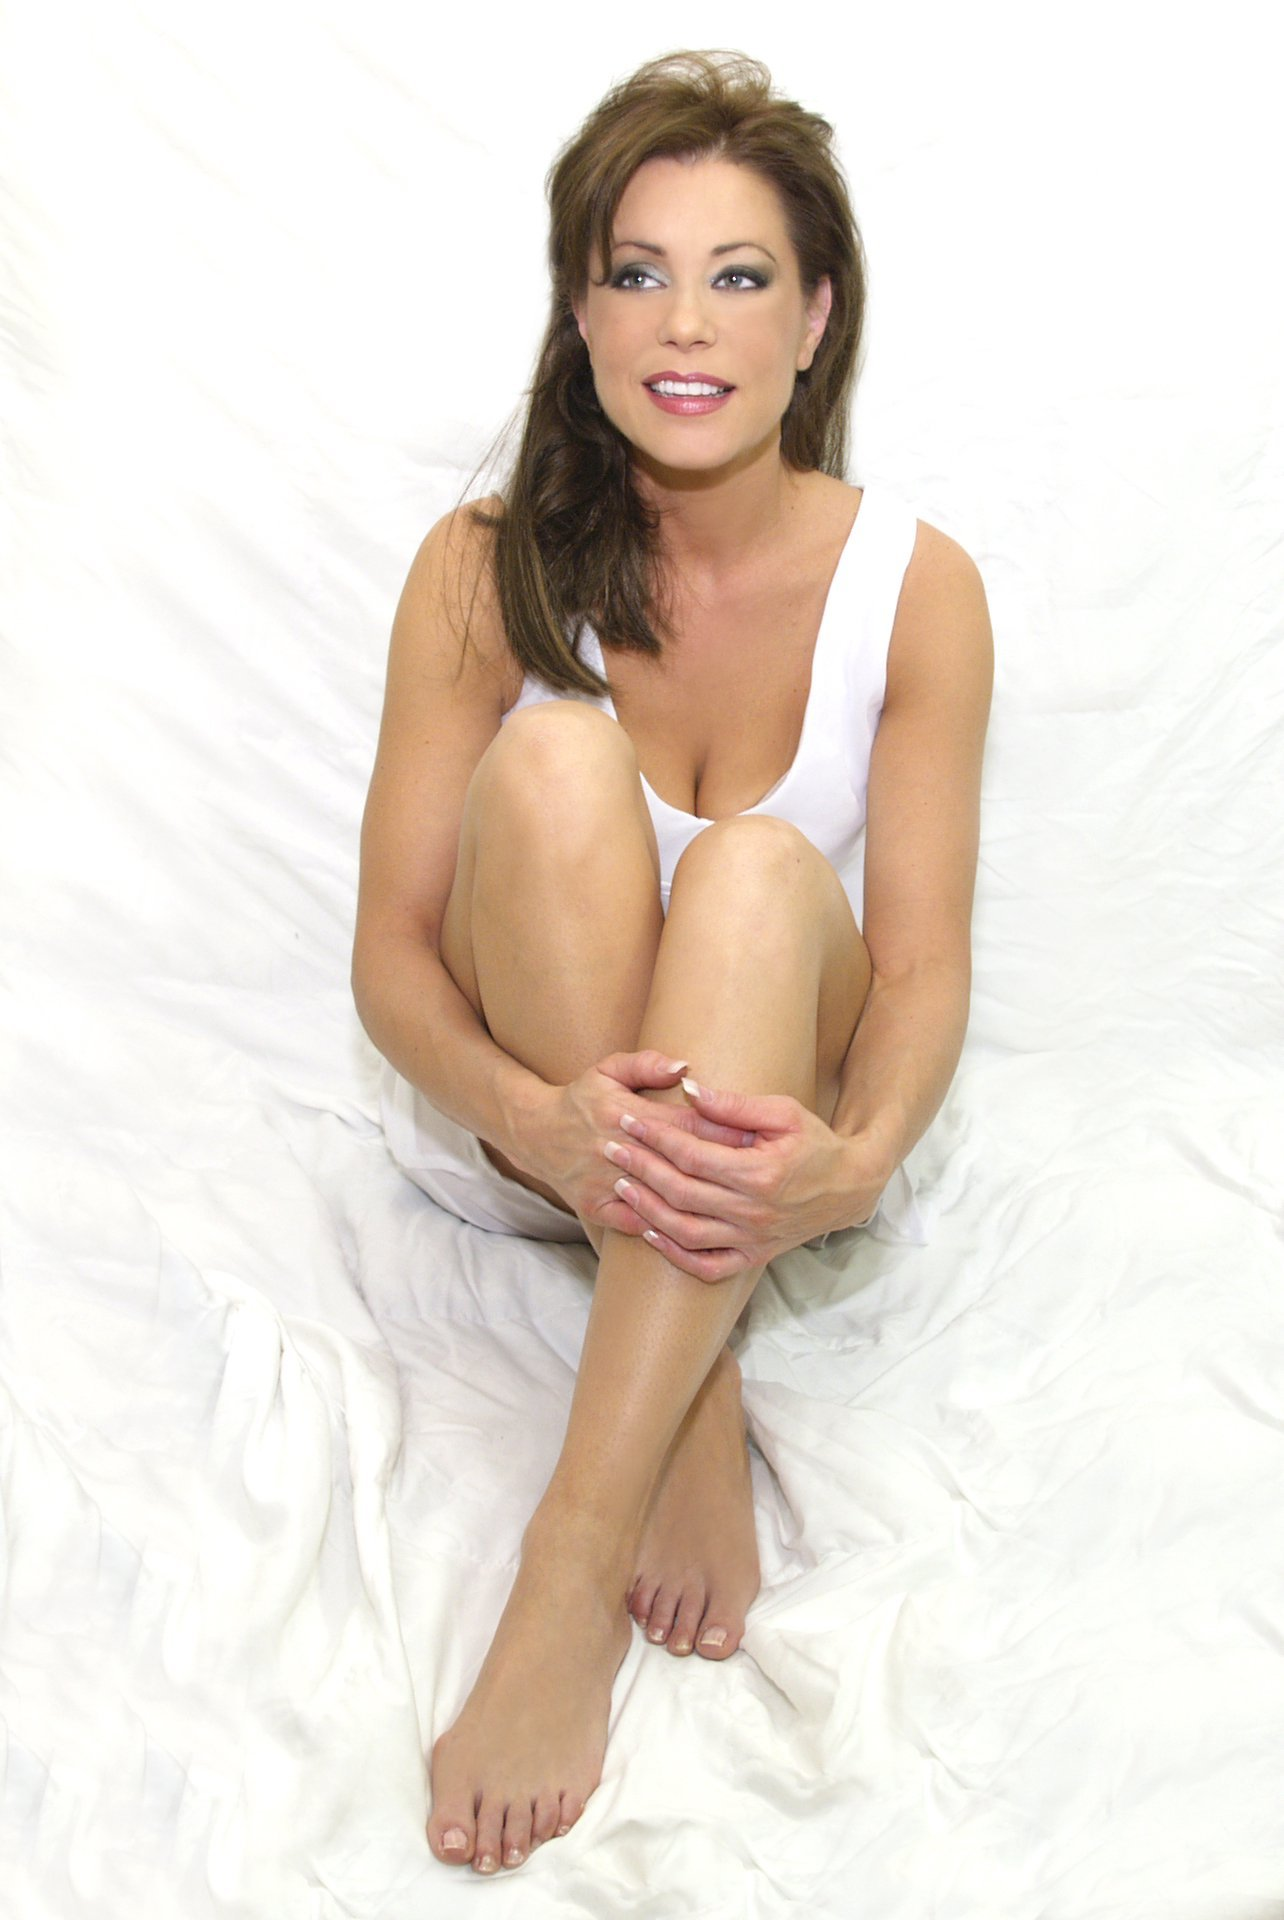 My moms feets one day i will cum on her pretty feets 5